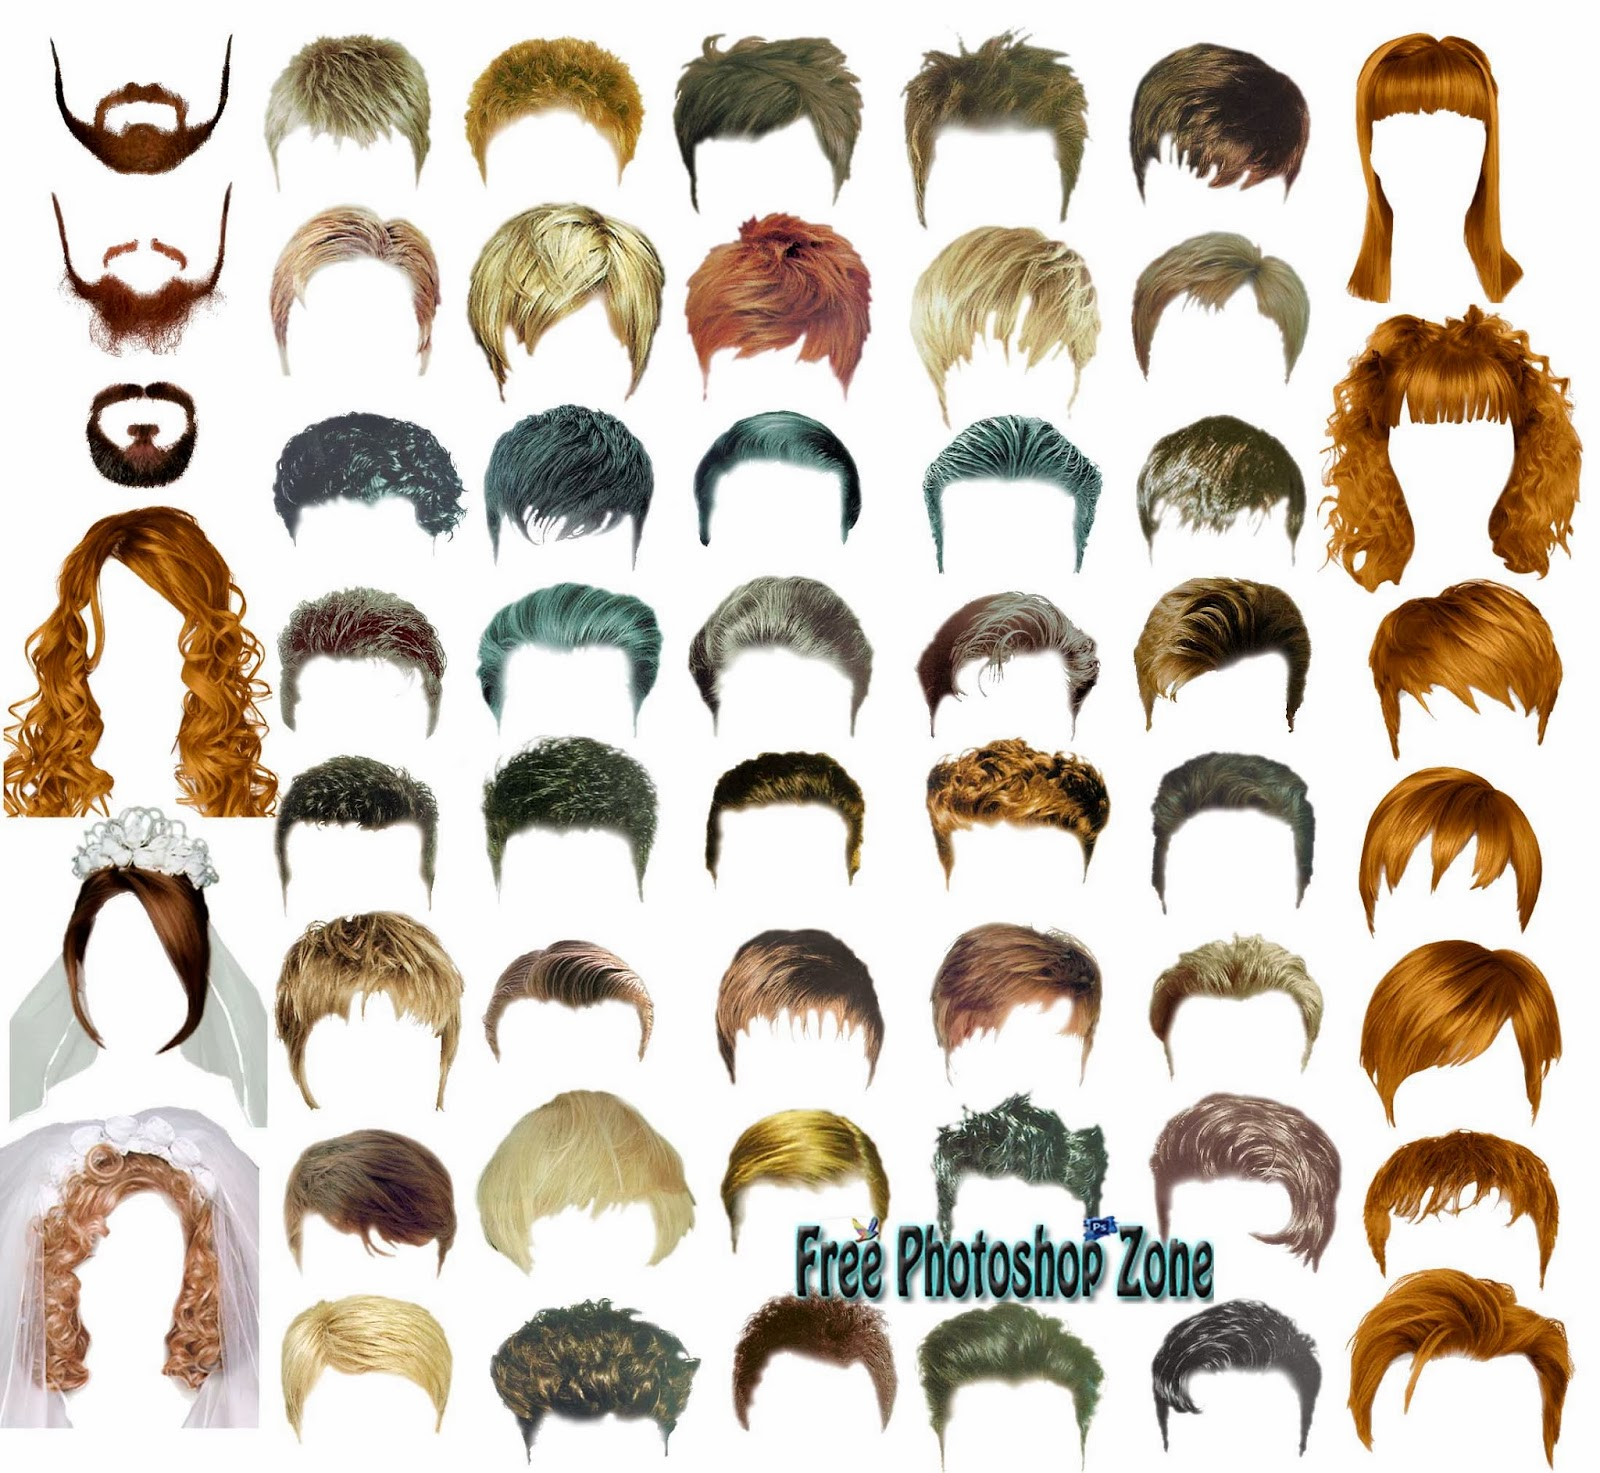 hair styles psd template free photoshop zone